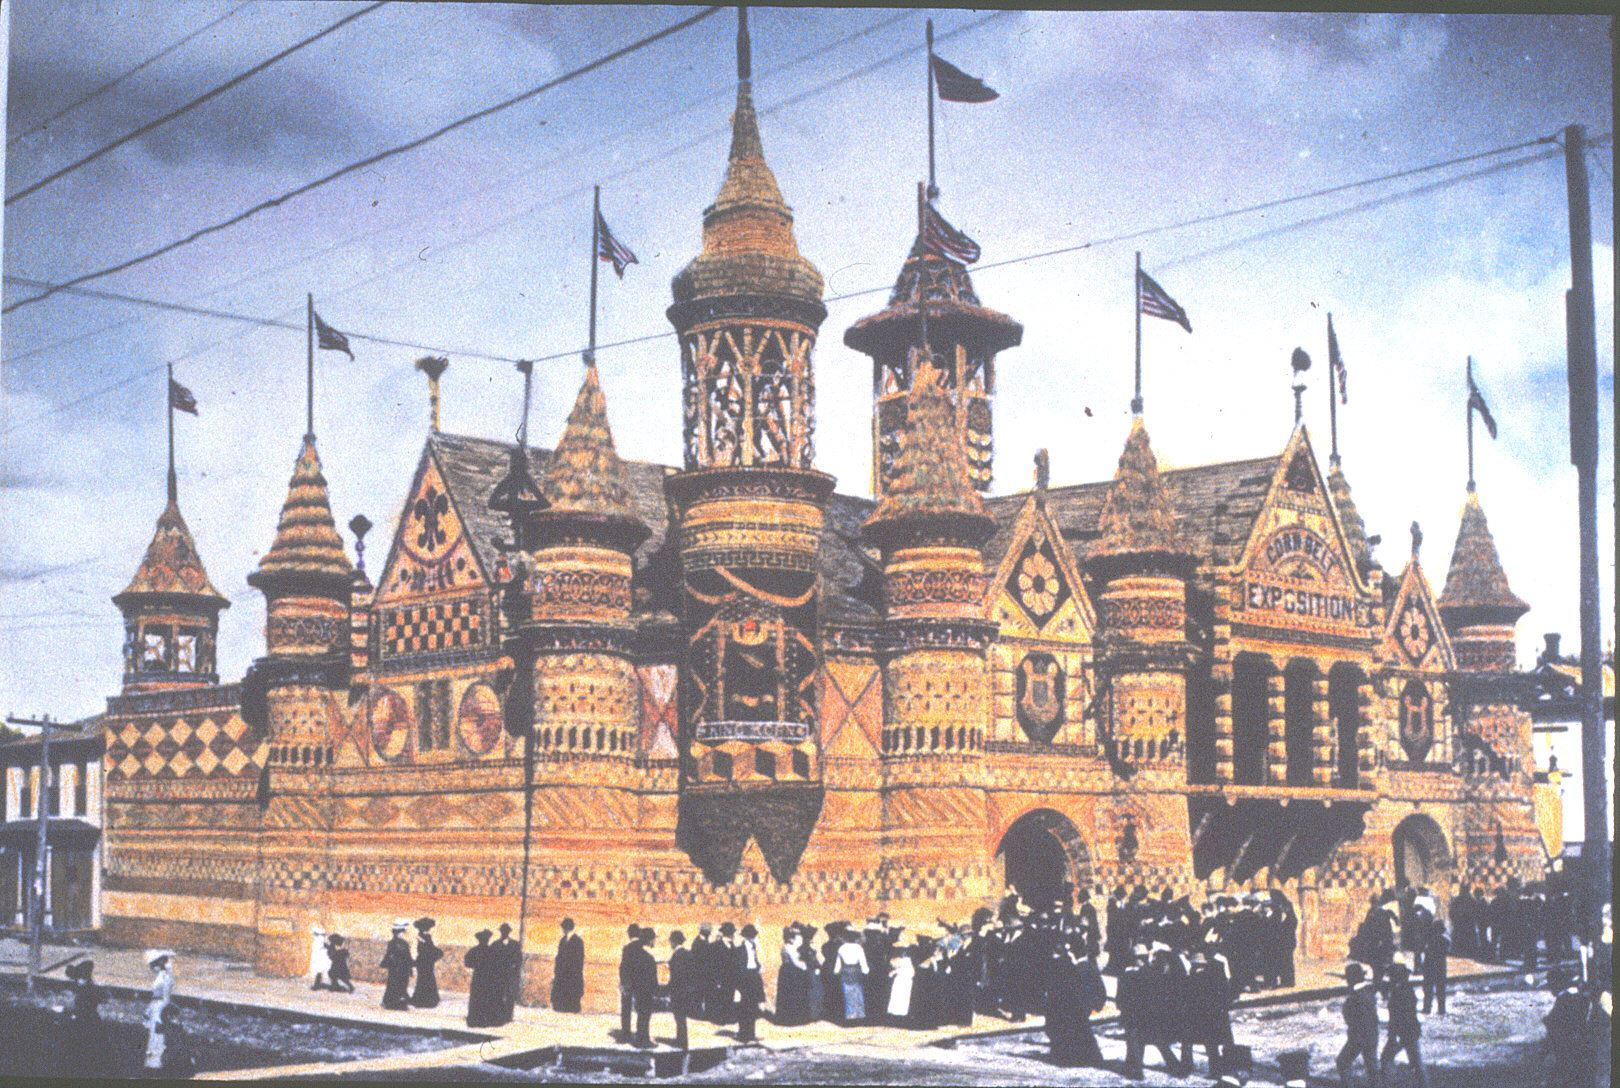 An image of the Corn Palace from 1902.